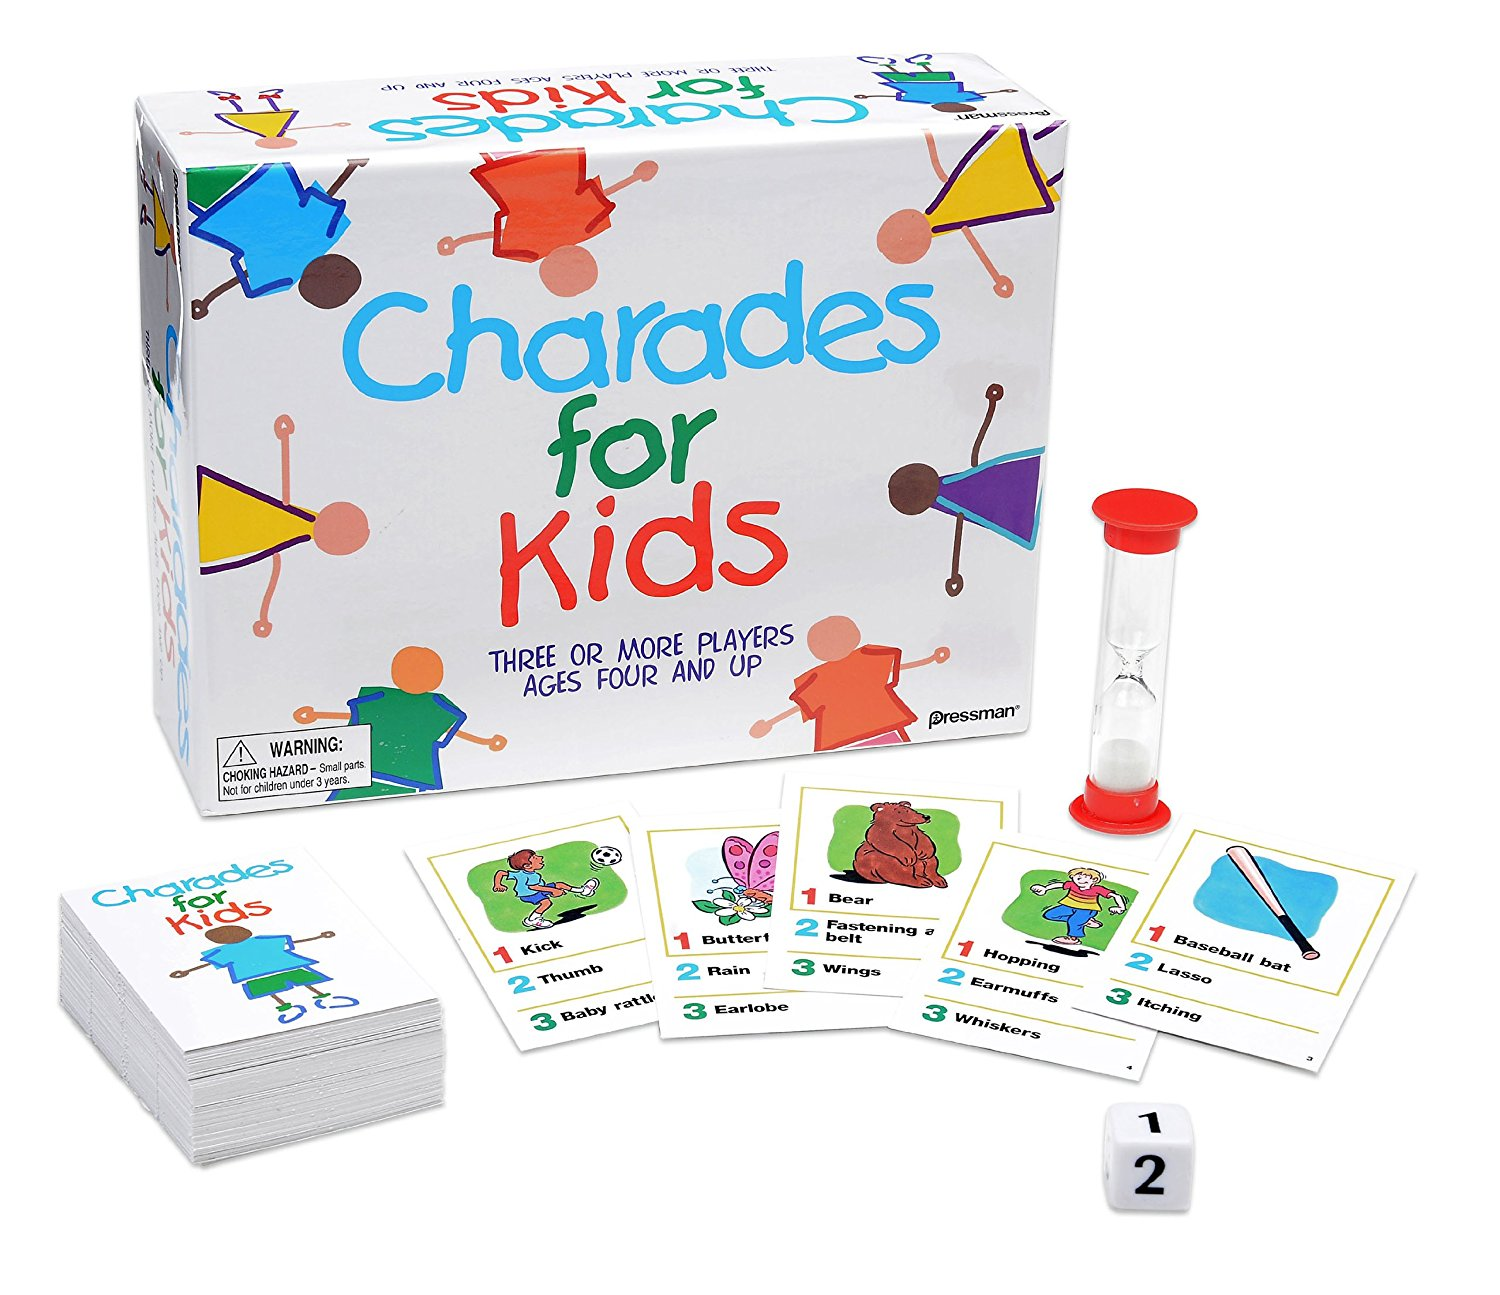 Charades for Kids, USA, Brand Pressman Toy by